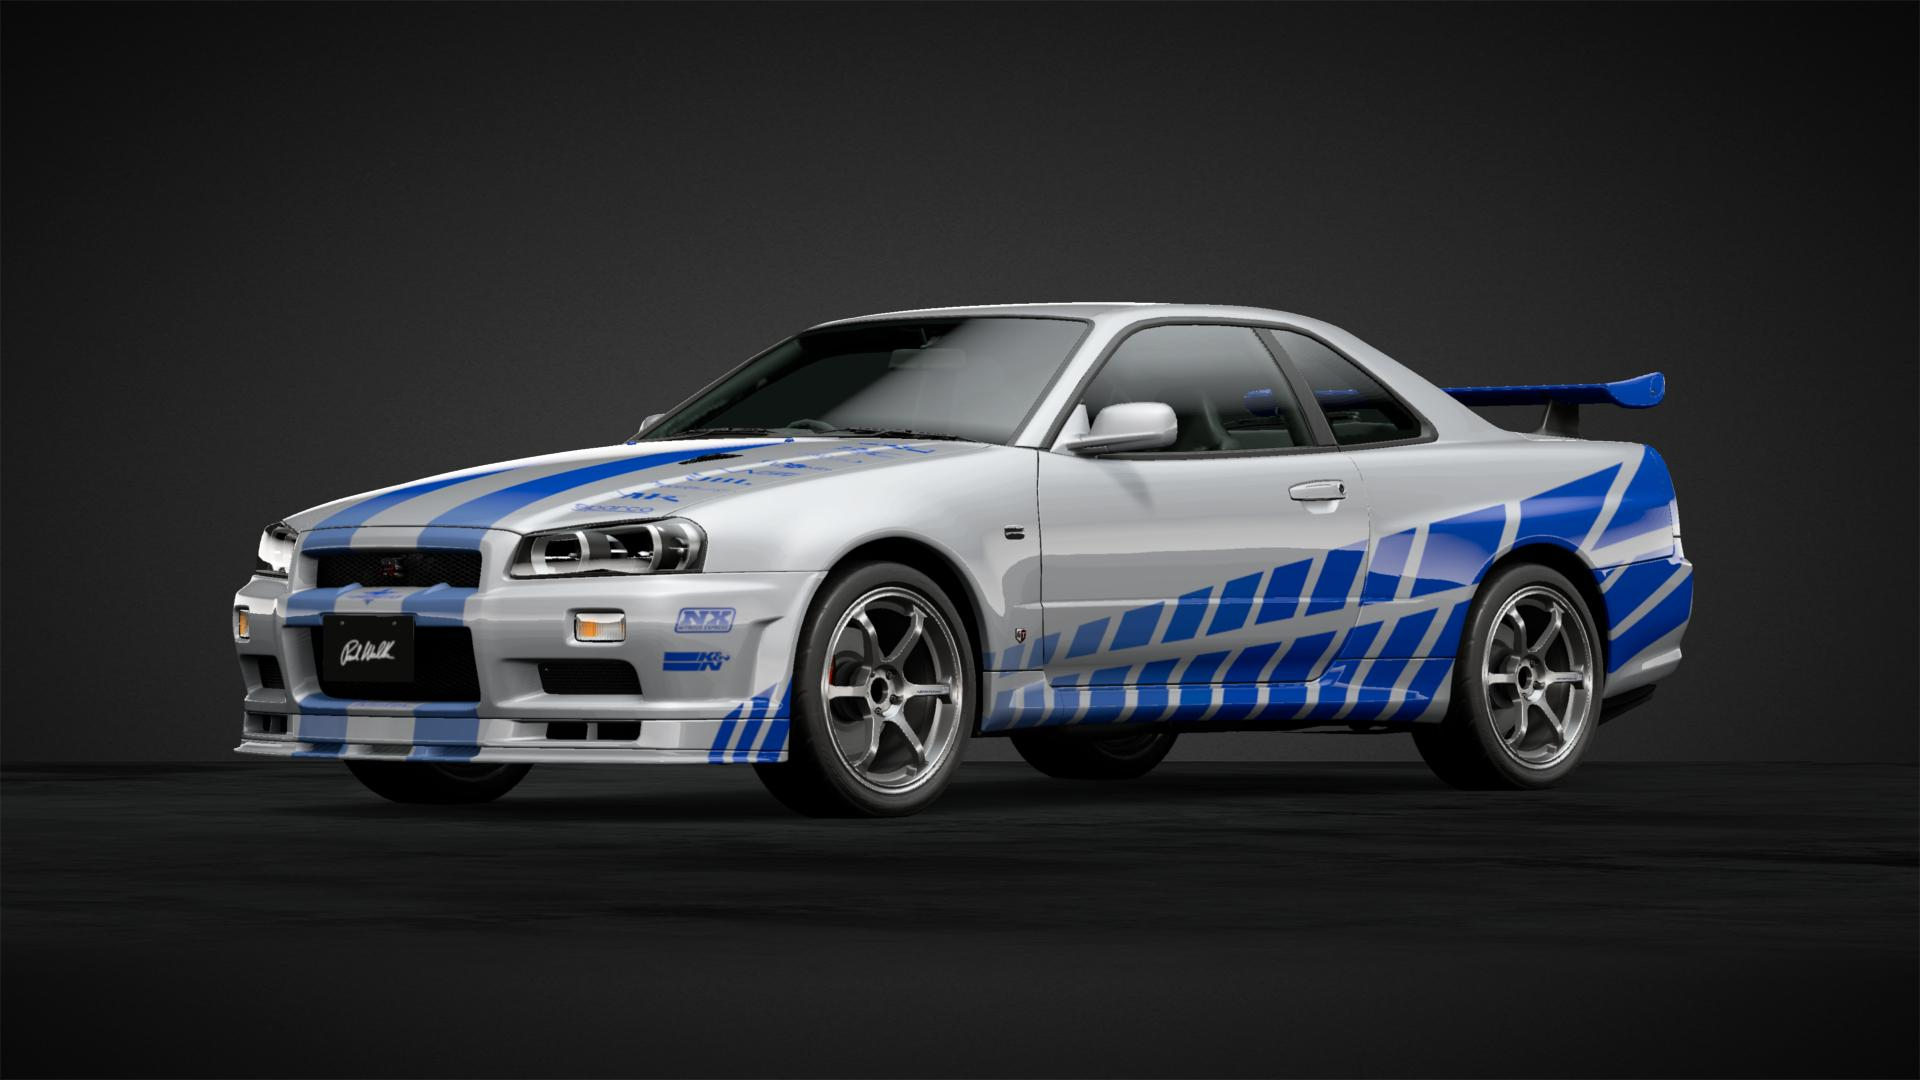 2 Fast 2 Furious Skyline - Car Livery by Luke_C_93